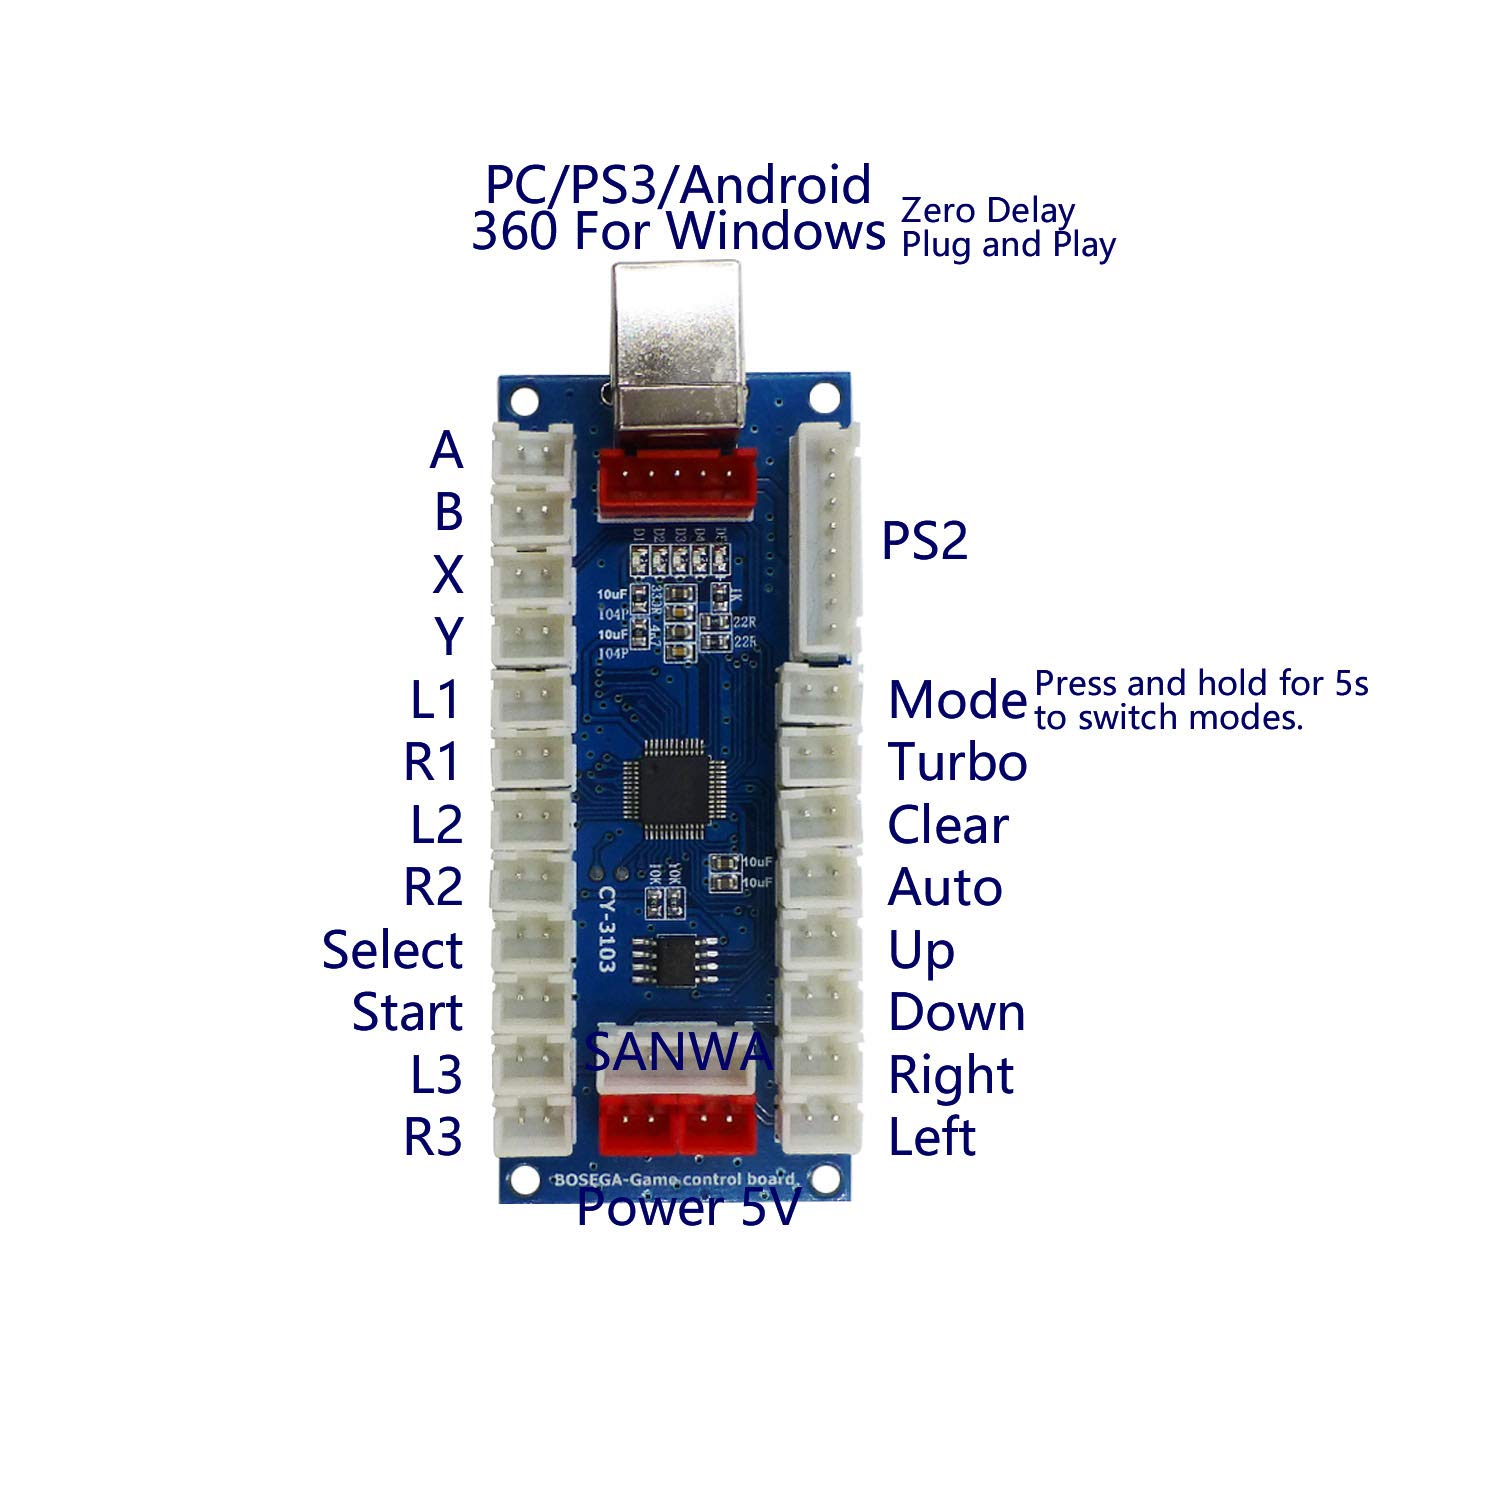 Ps3 Fan Wiring Diagram Ps3 Get Free Image About Wiring Diagram